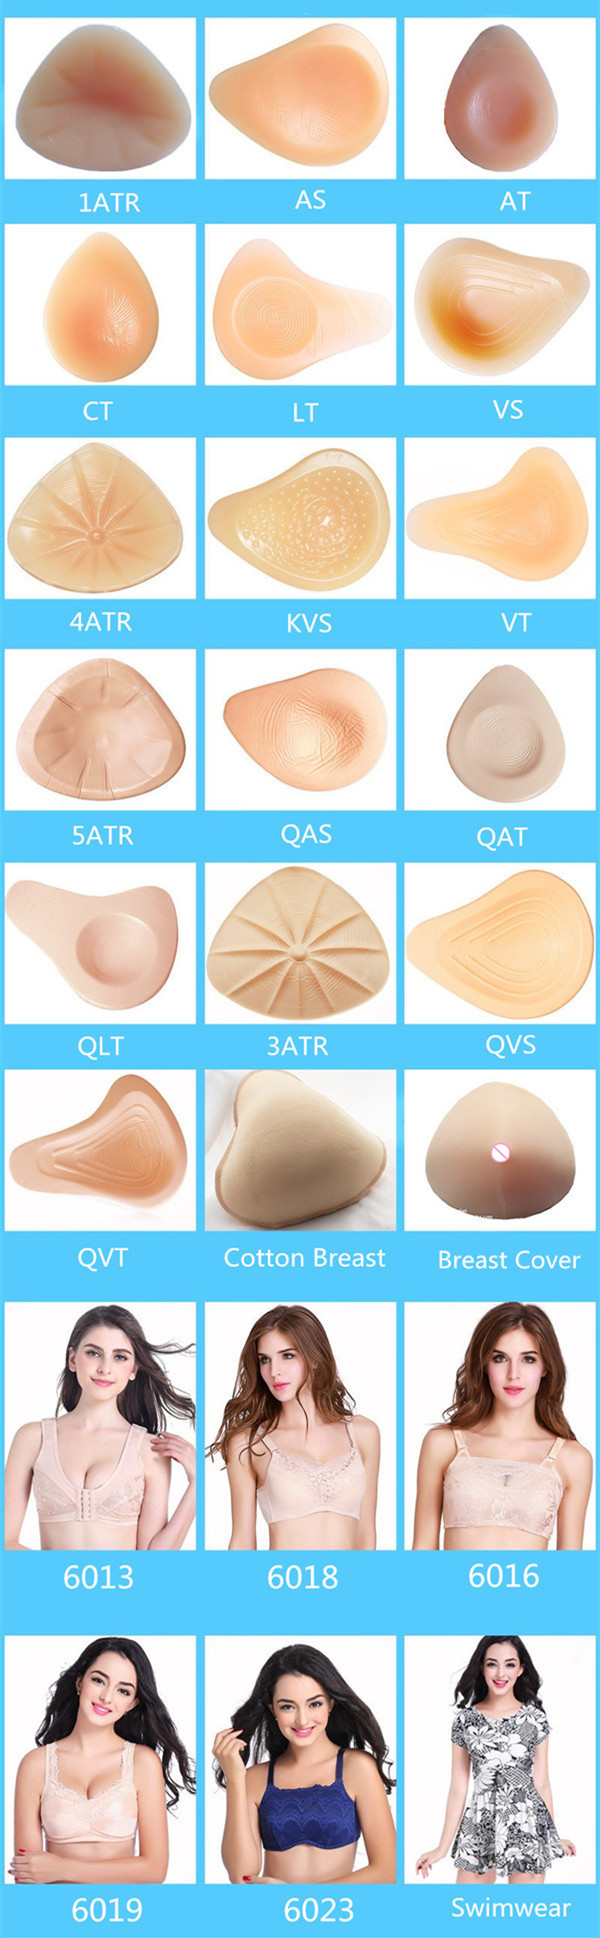 Boobs Sexy Massage Gel Mastectomy Prosthesis Bra Enhancer Silicone Breast Form Boob Cancer